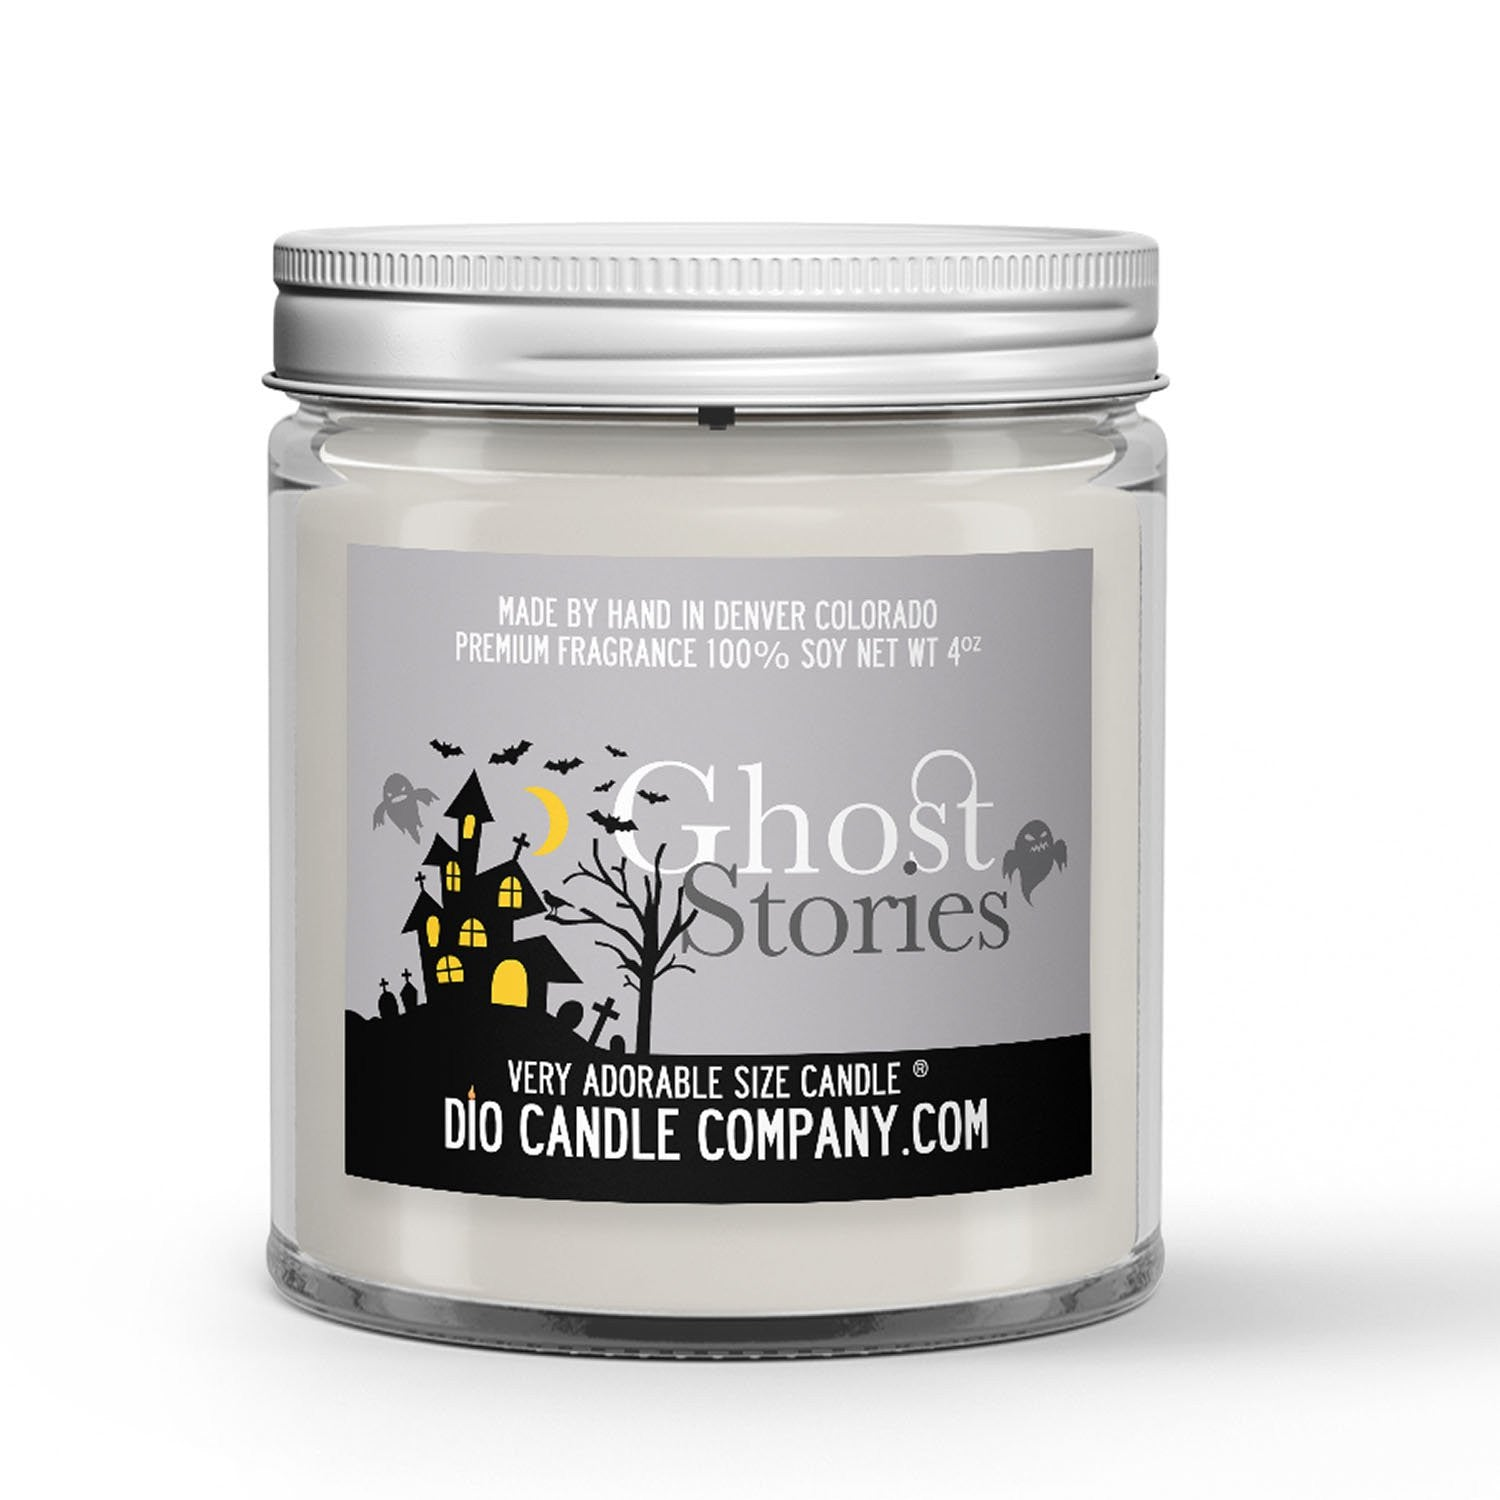 Ghost Stories Candle - Cedar Roasted Marshmallow - Fog - 4oz Very Adorable Size Candle® - Dio Candle Company